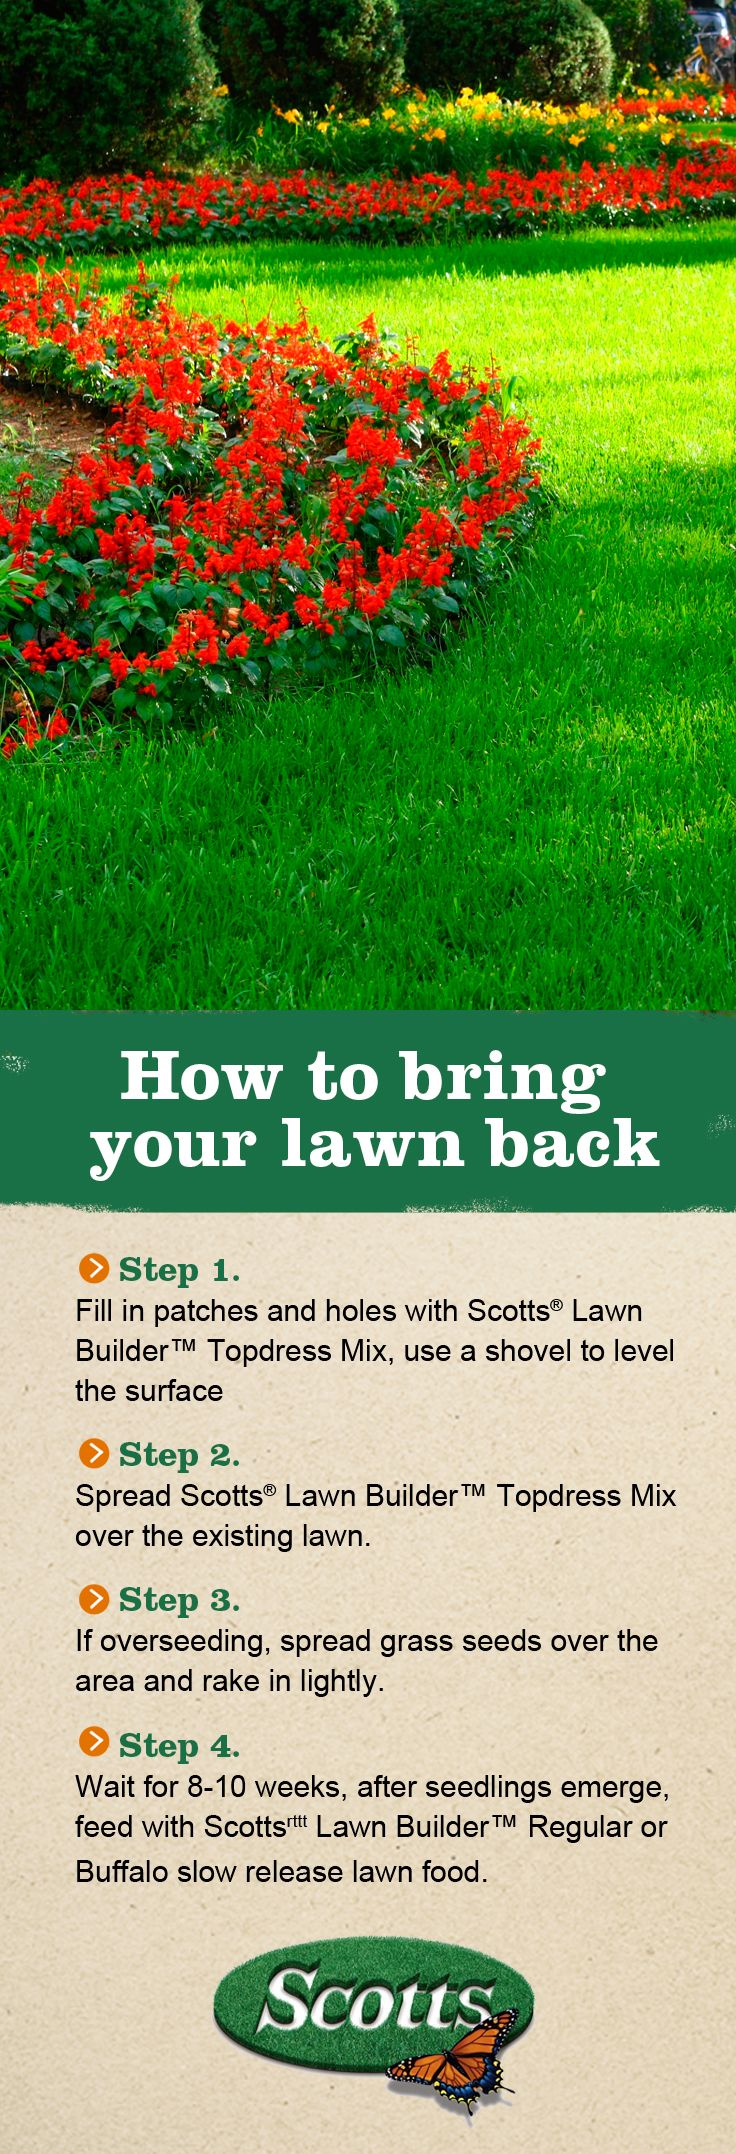 Rejuvenate your #lawn this #autumn with these handy hints from Scotts!